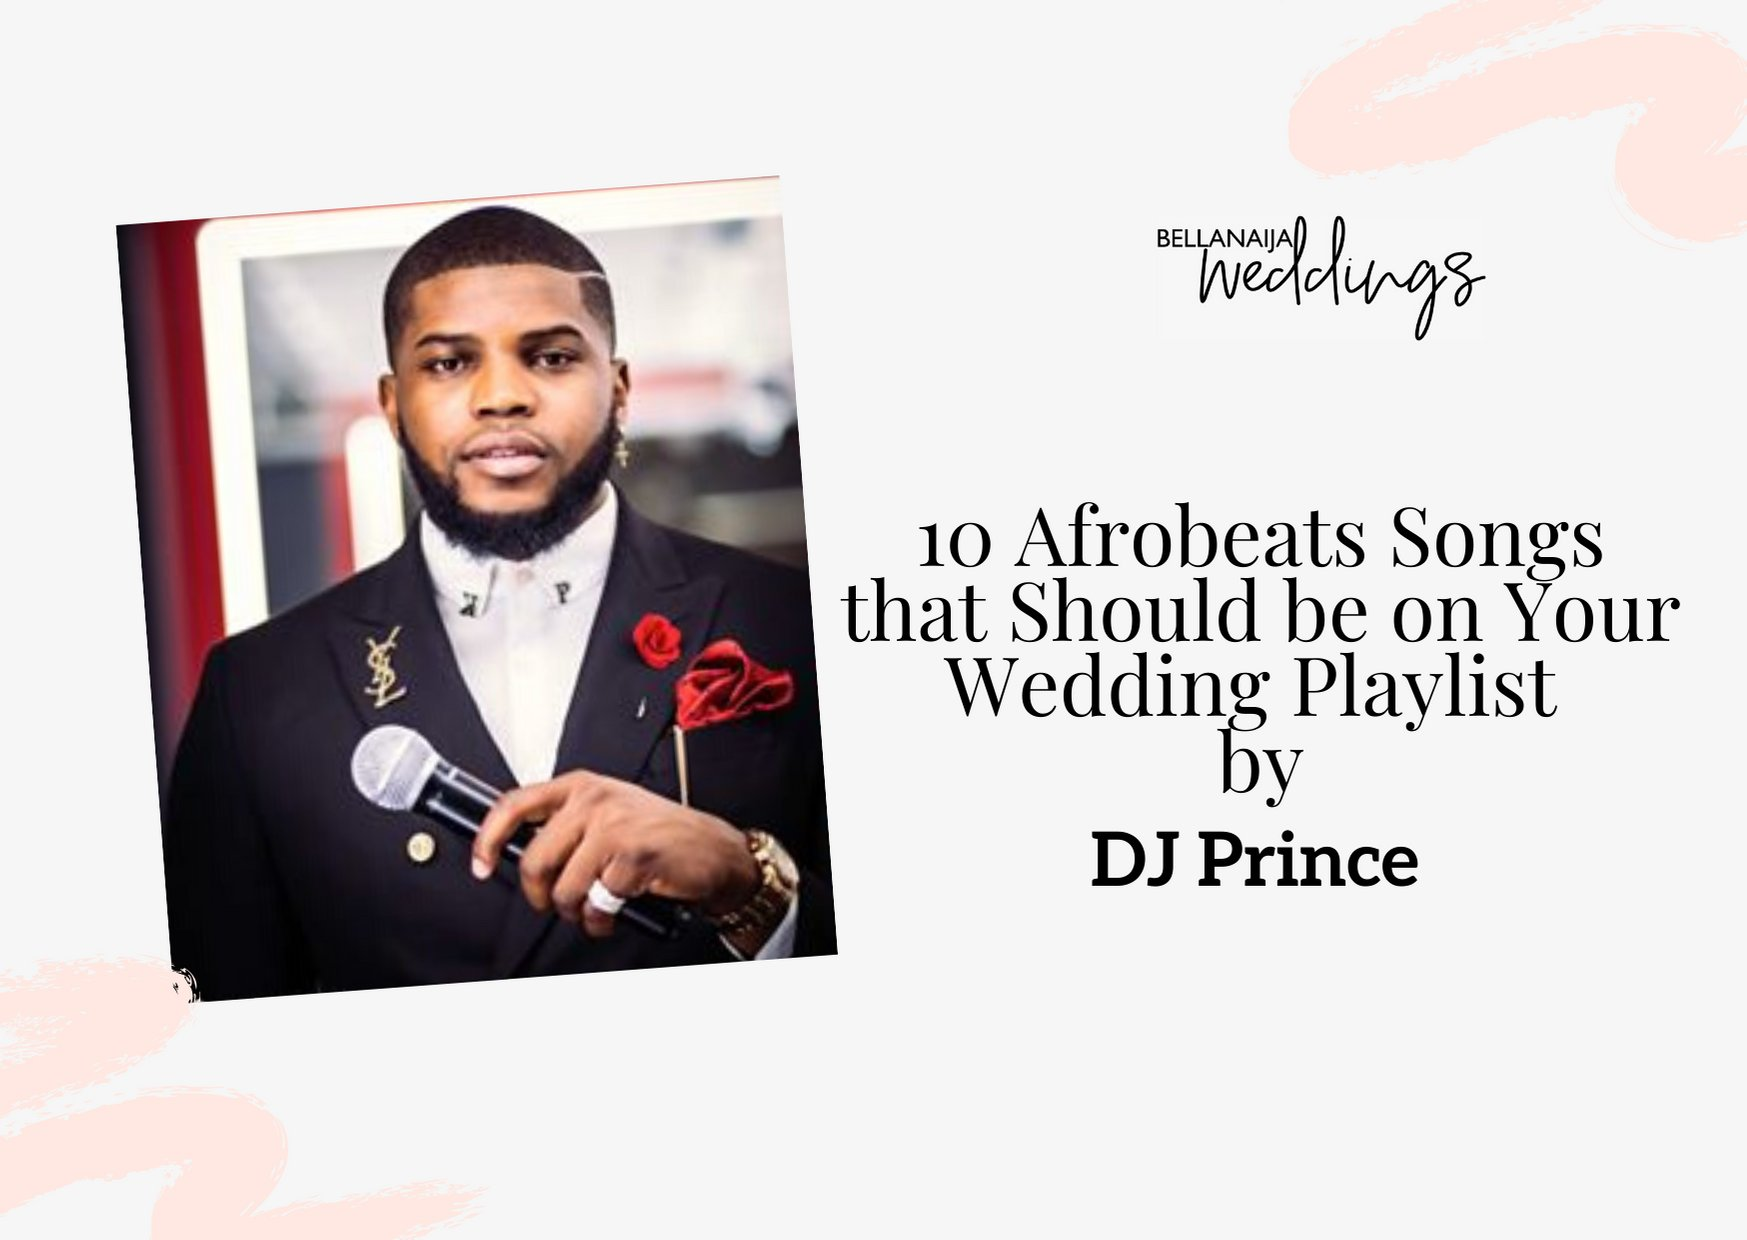 10 Afrobeats Songs that Should be on Your Wedding Playlist by DJ Prince | BellaNaija Weddings